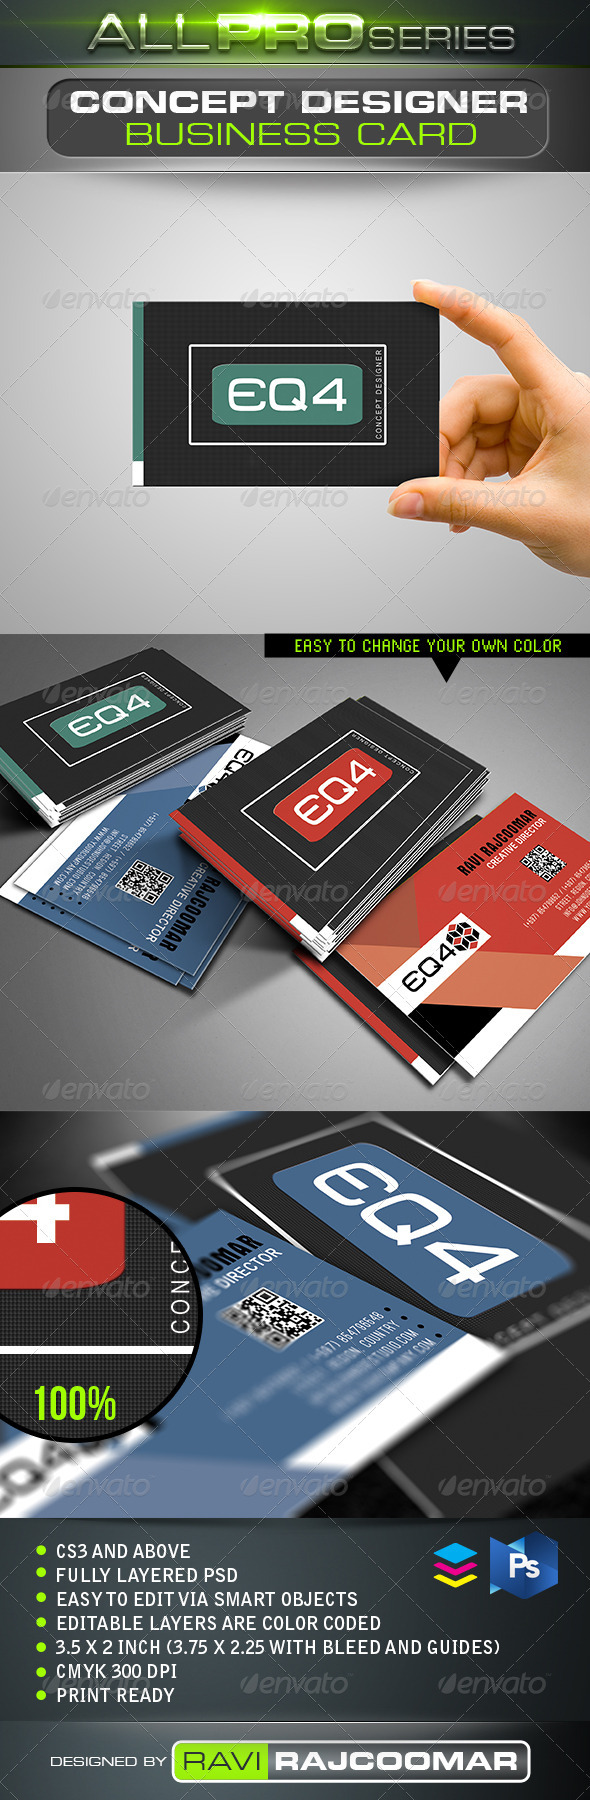 Concept Designer Business Card - Business Cards Print Templates